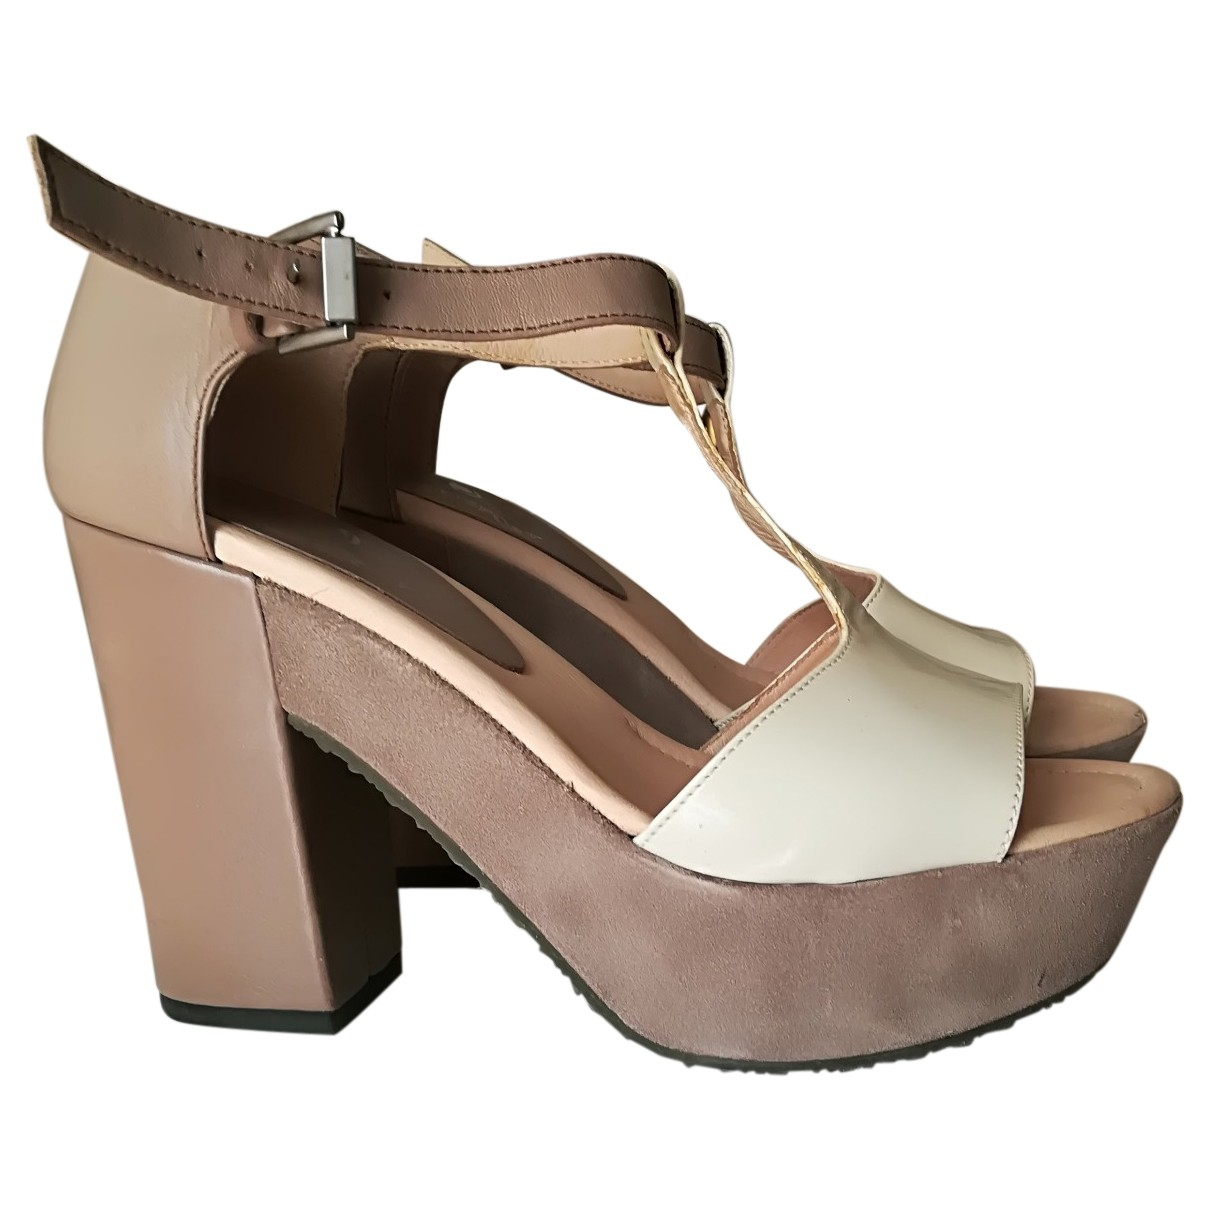 Janet & Janet \N Beige Leather Sandals for Women 39 EU